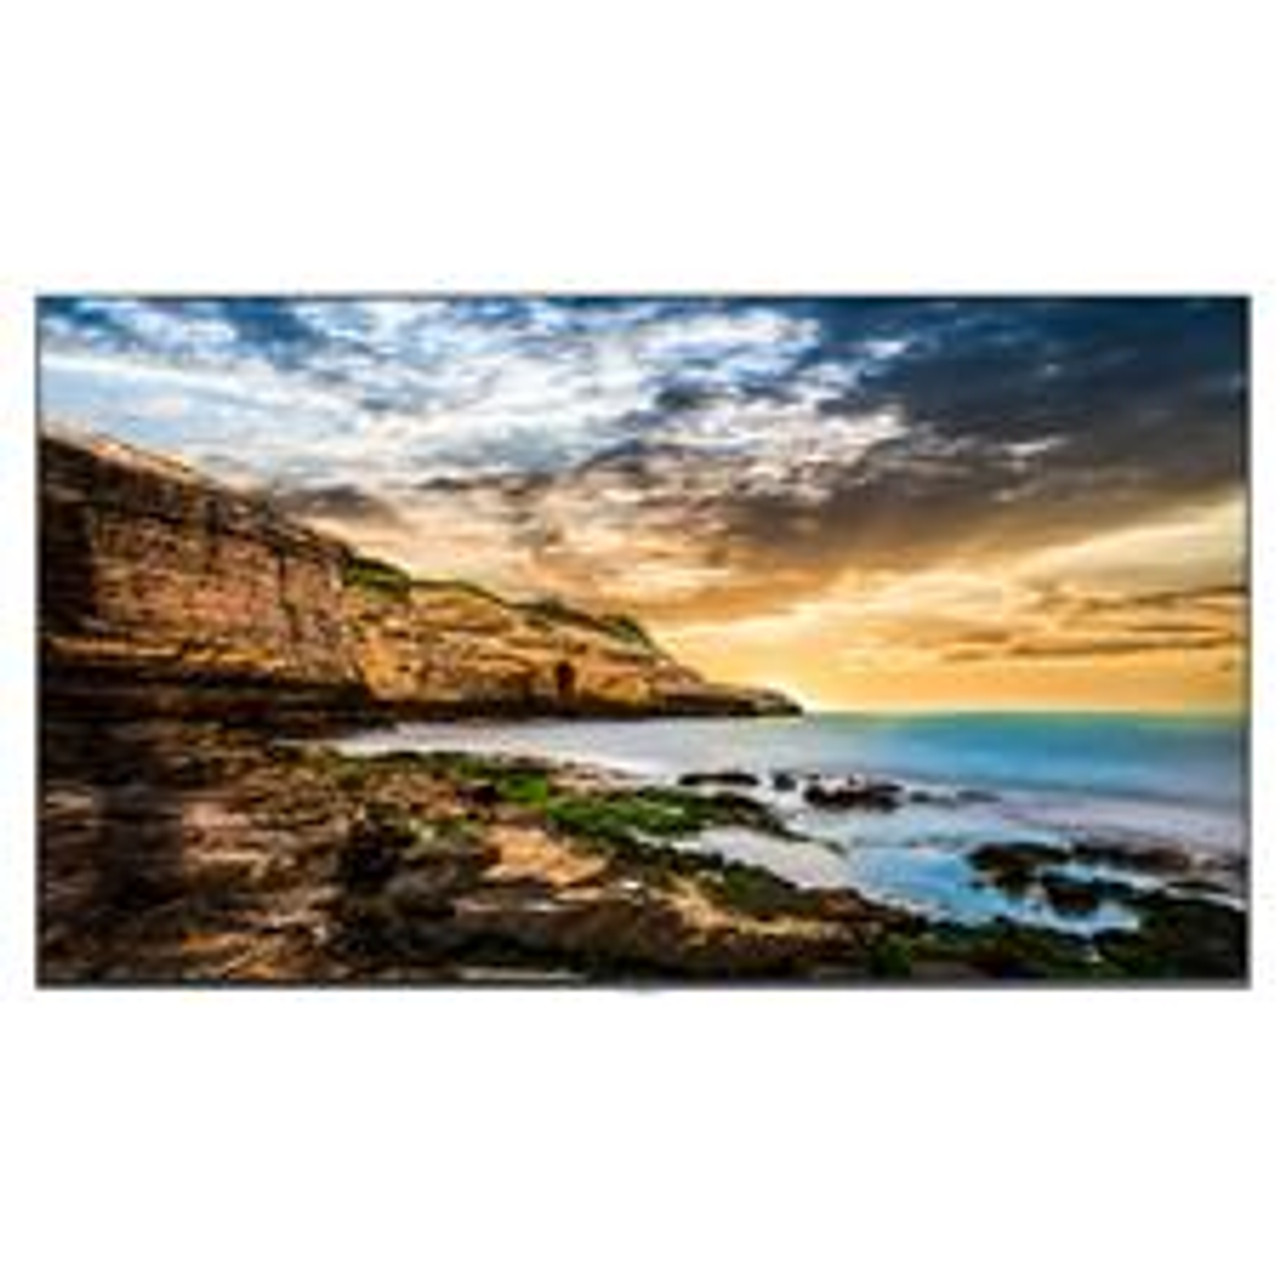 Samsung QE43T 43in 4K UHD 16/7 300nit Commercial Display